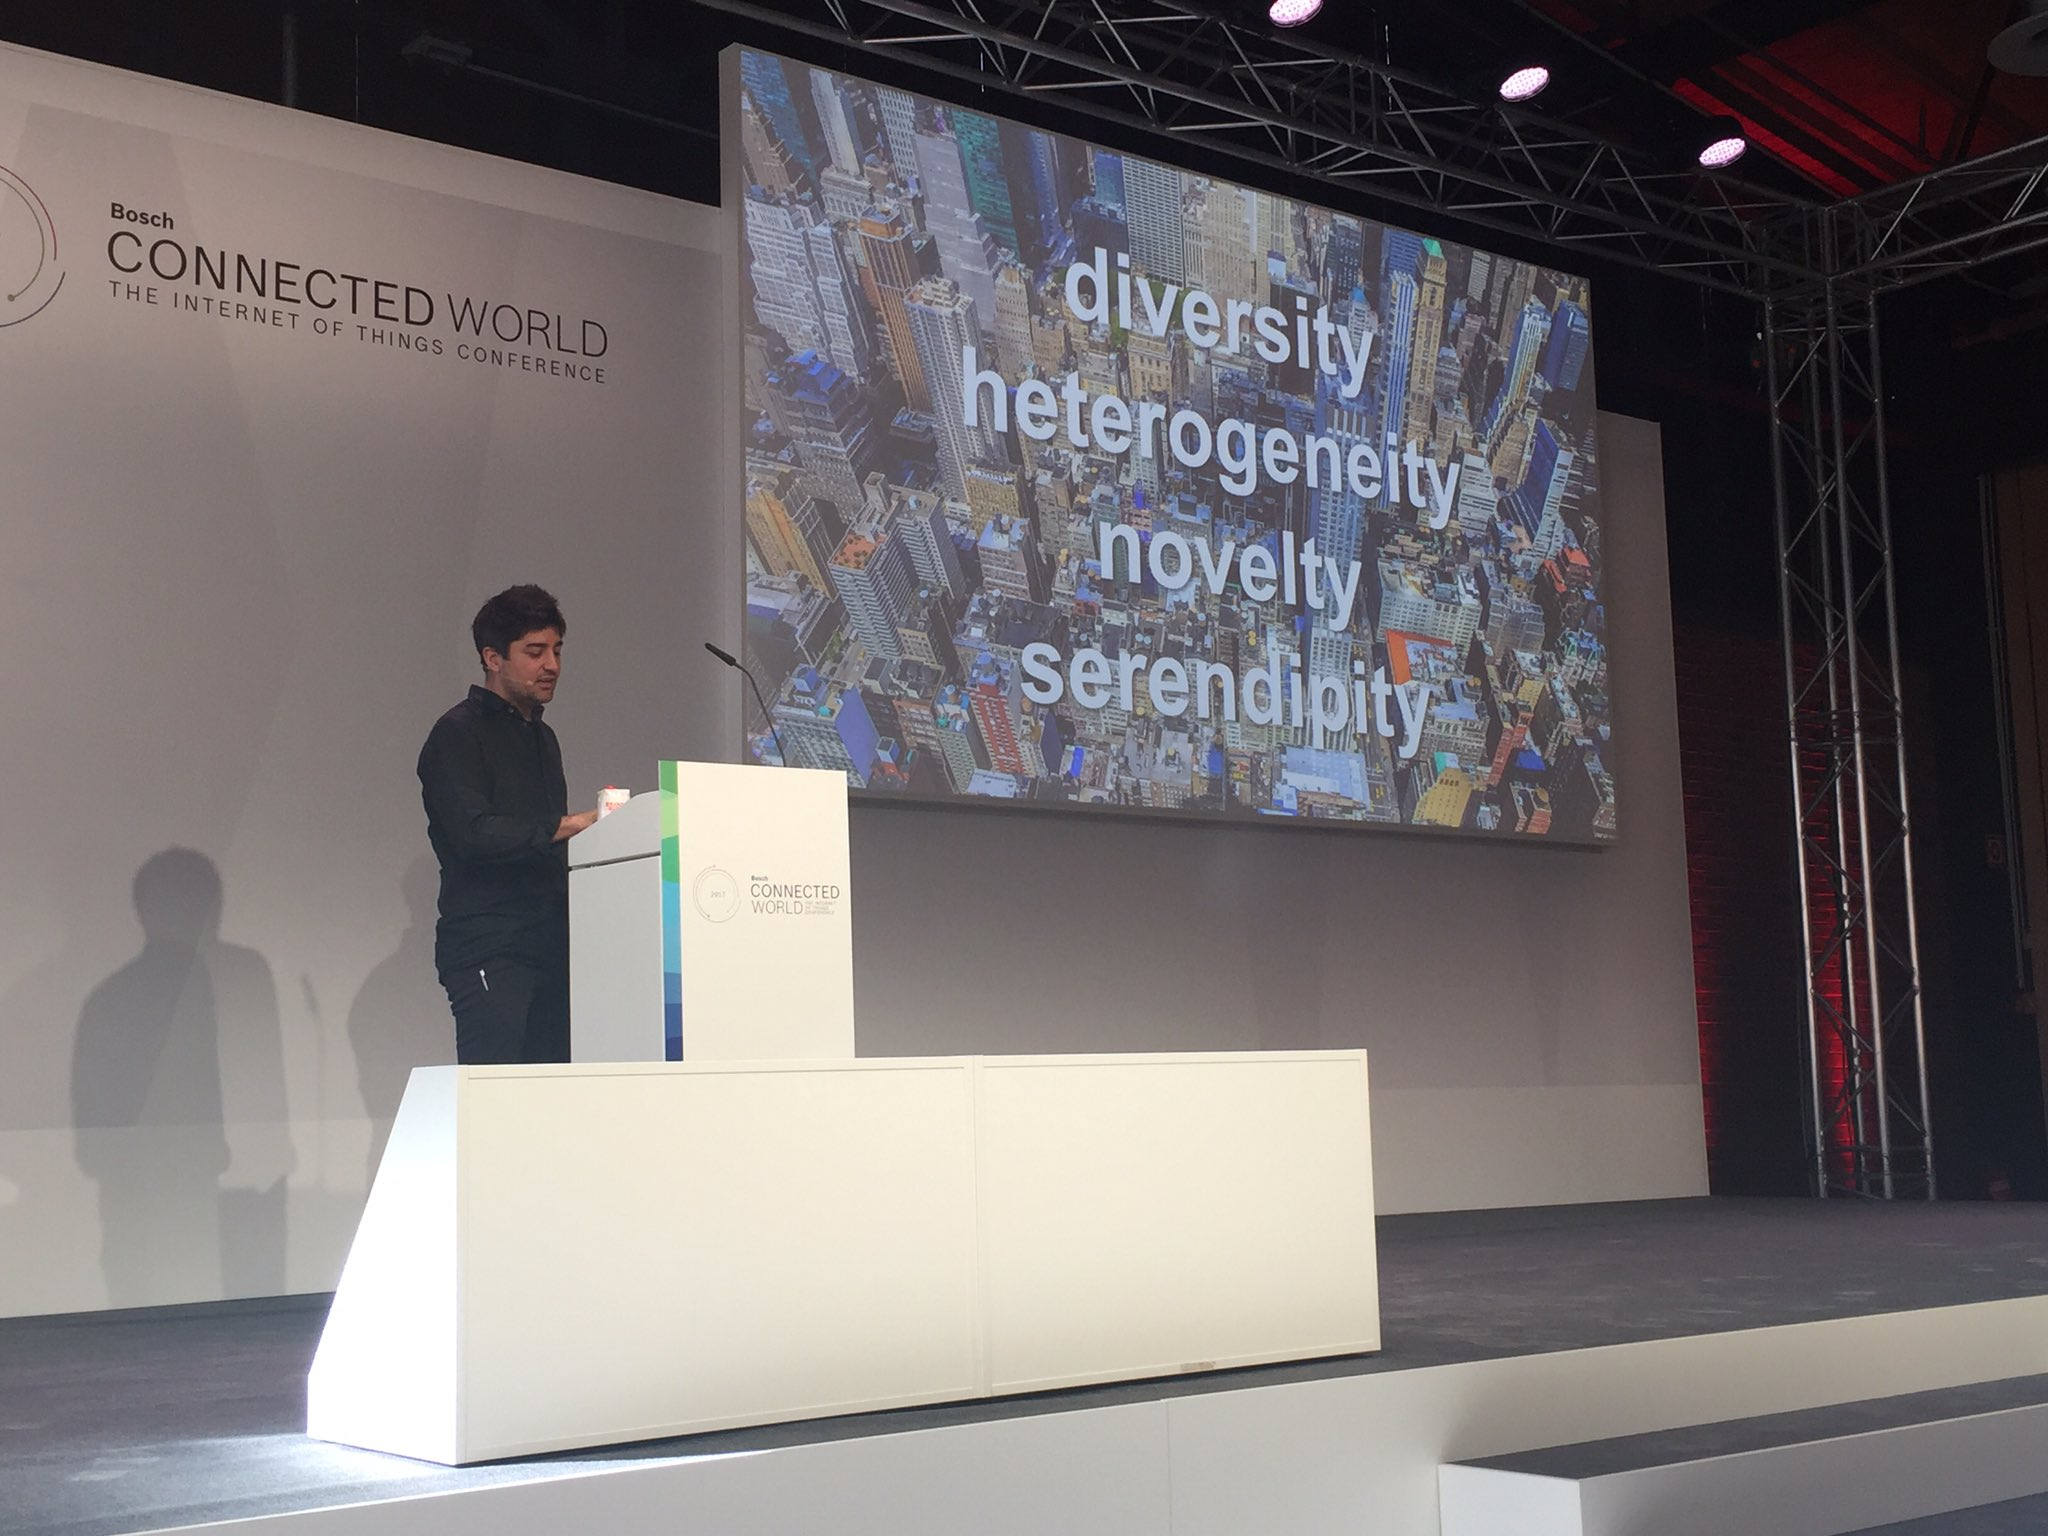 .@uah on smart cities and interoperability: 'Unlock the data to do more useful stuff.' #BCW17 https://t.co/4iZVeAiMs0